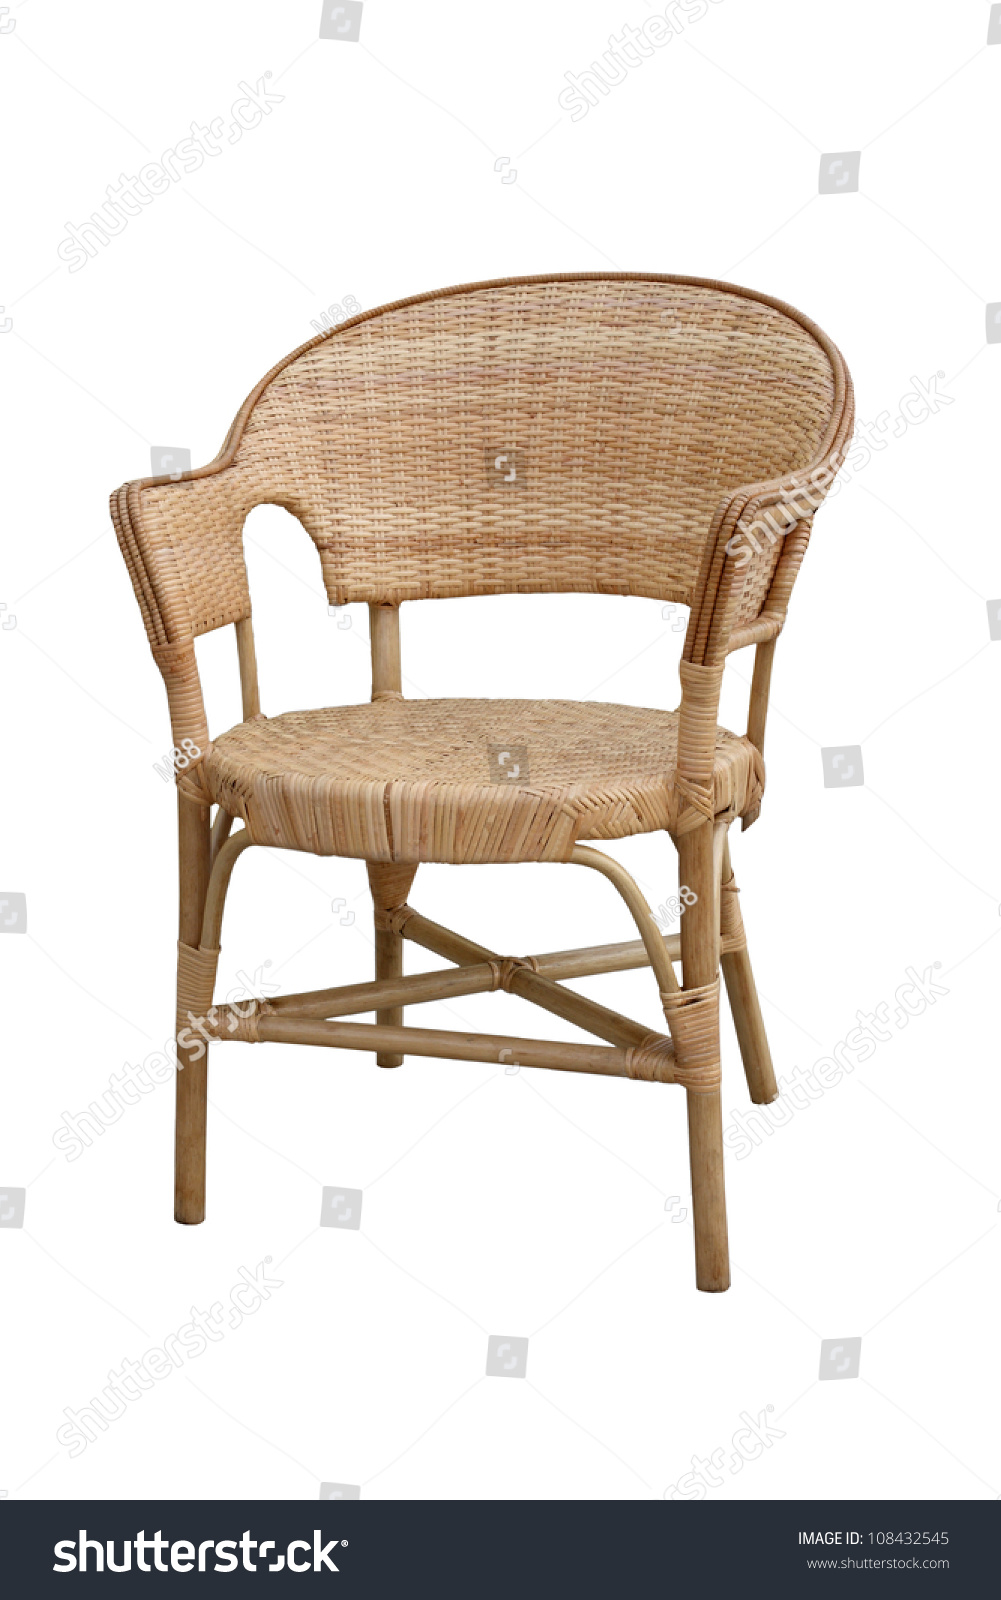 Wicker comfortable chair isolated on white stock photo for White comfy chair